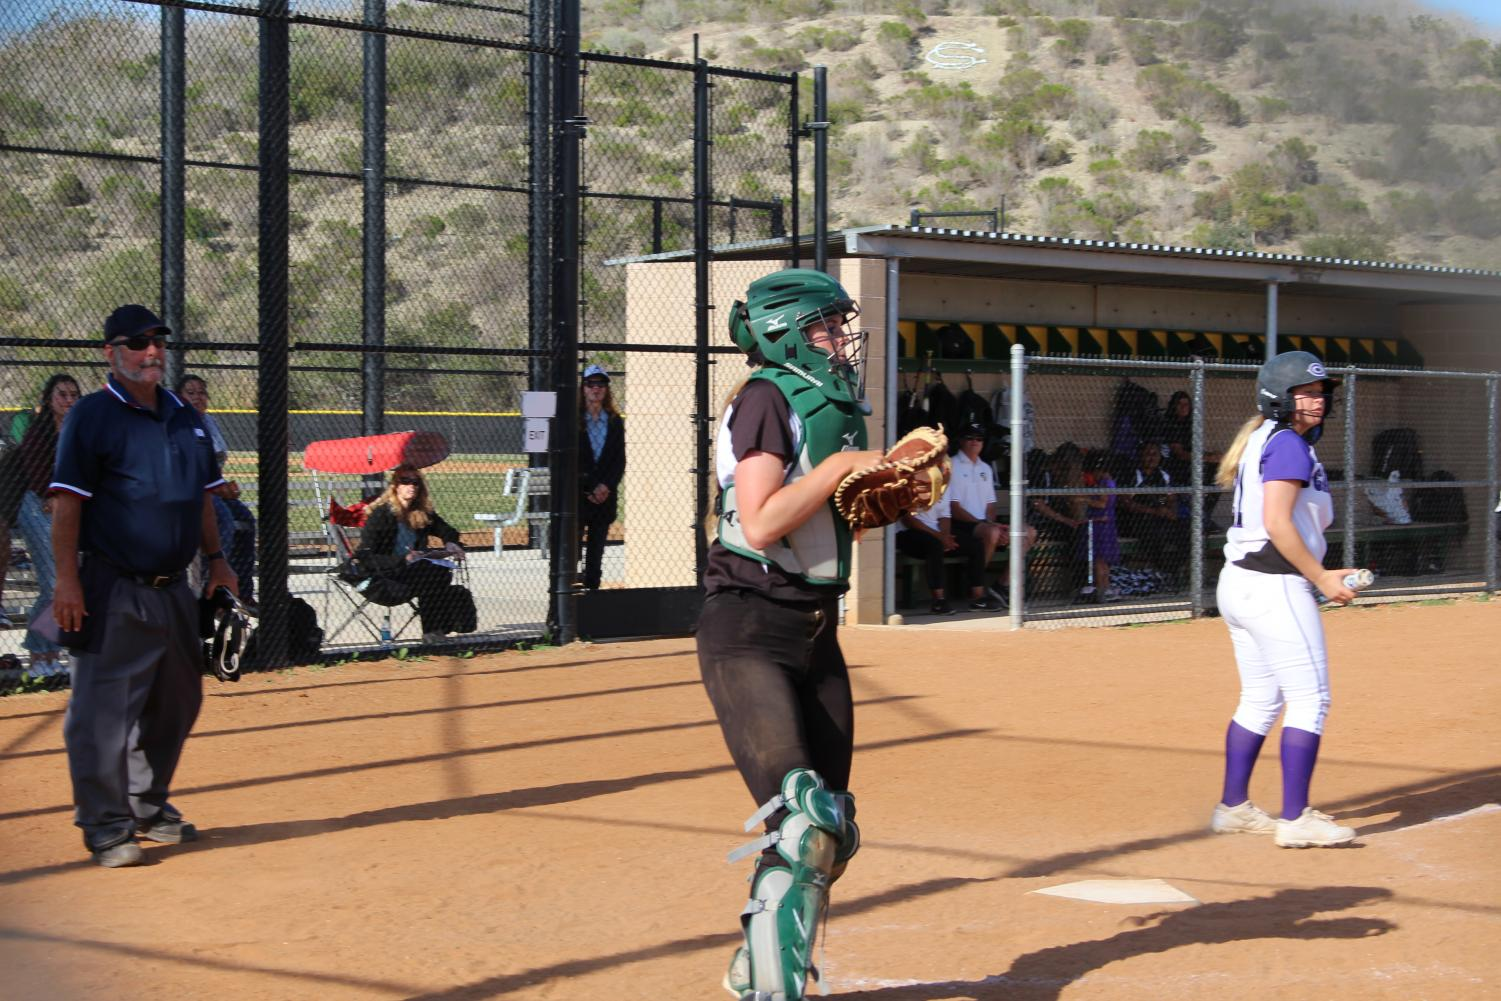 Sage+Creek+Softball+Gallery